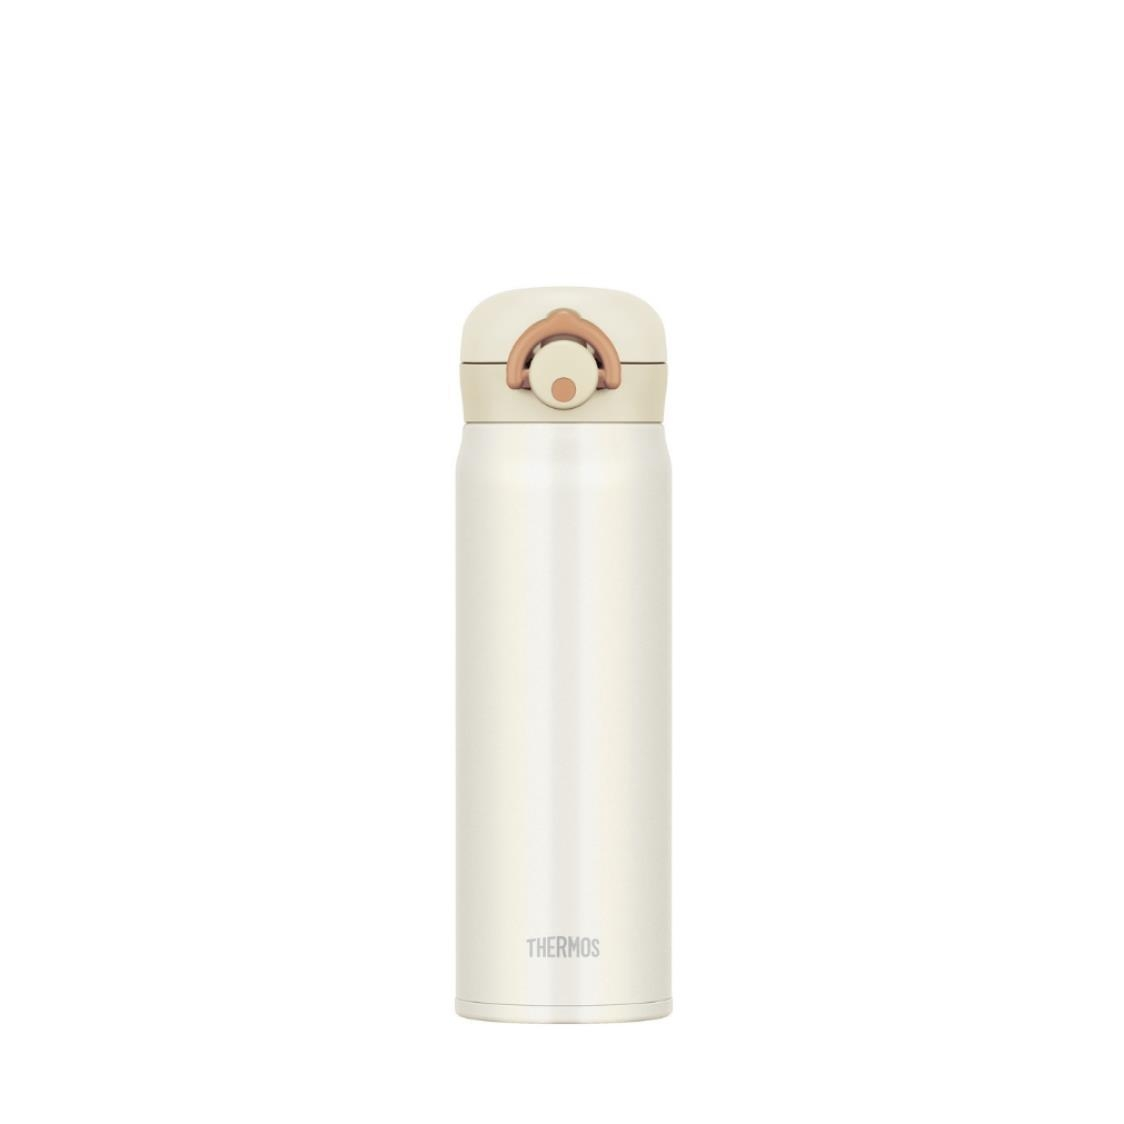 One Push Tumbler With Local Design Stickers 05L Cream White